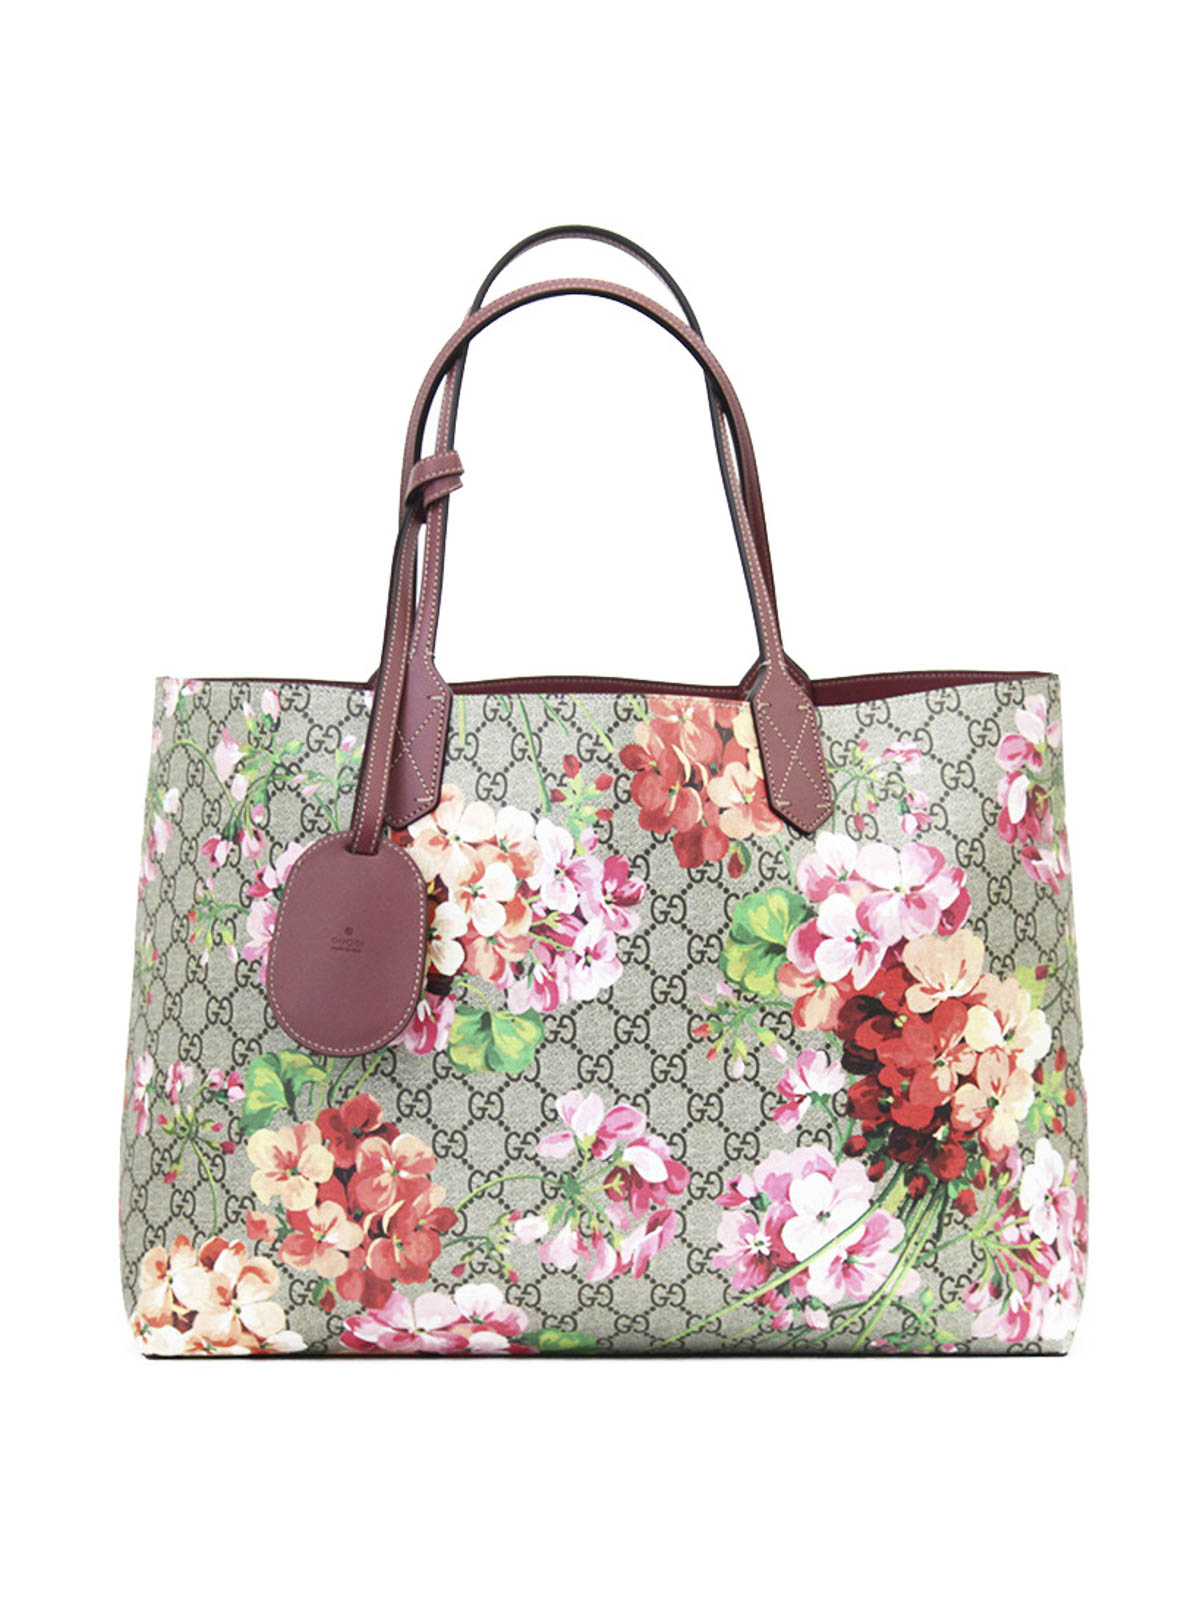 394017eae67c Gucci - Reversible GG Blooms leather tote - totes bags - 368568 ...